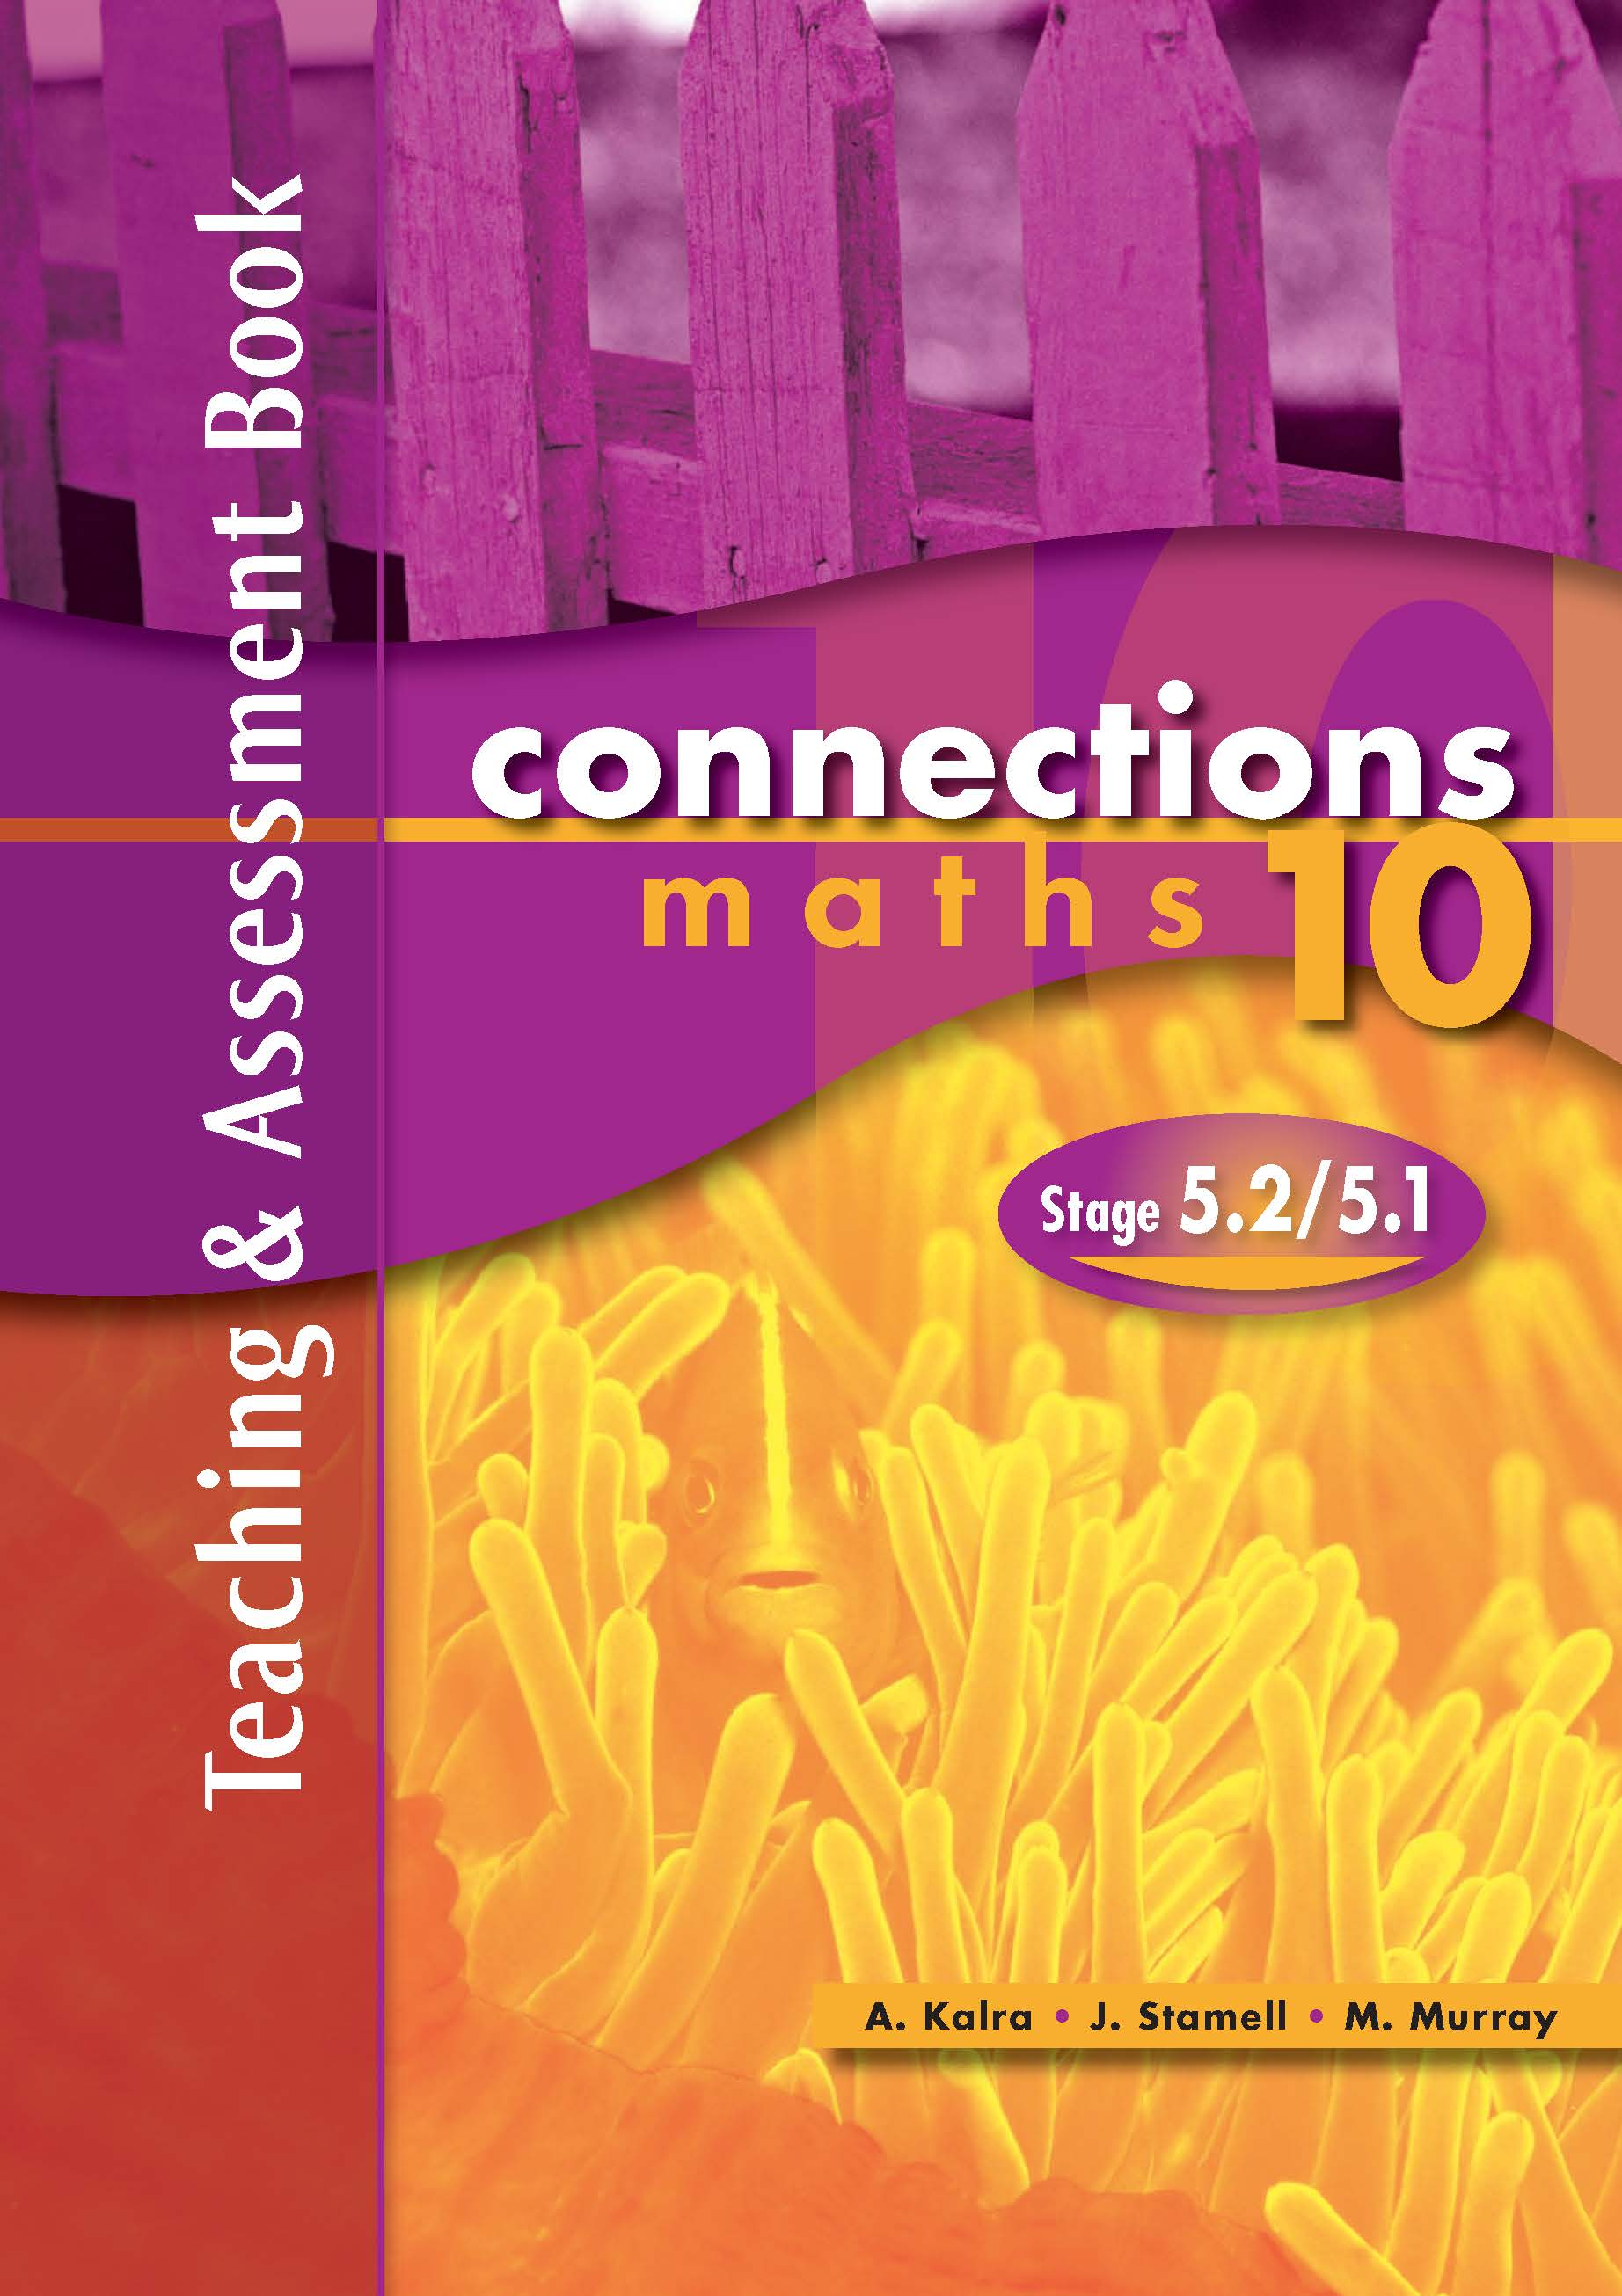 Pascal Press Connections Maths 10 Stage 5.2/5.1 Teaching & Assessment book Year 10